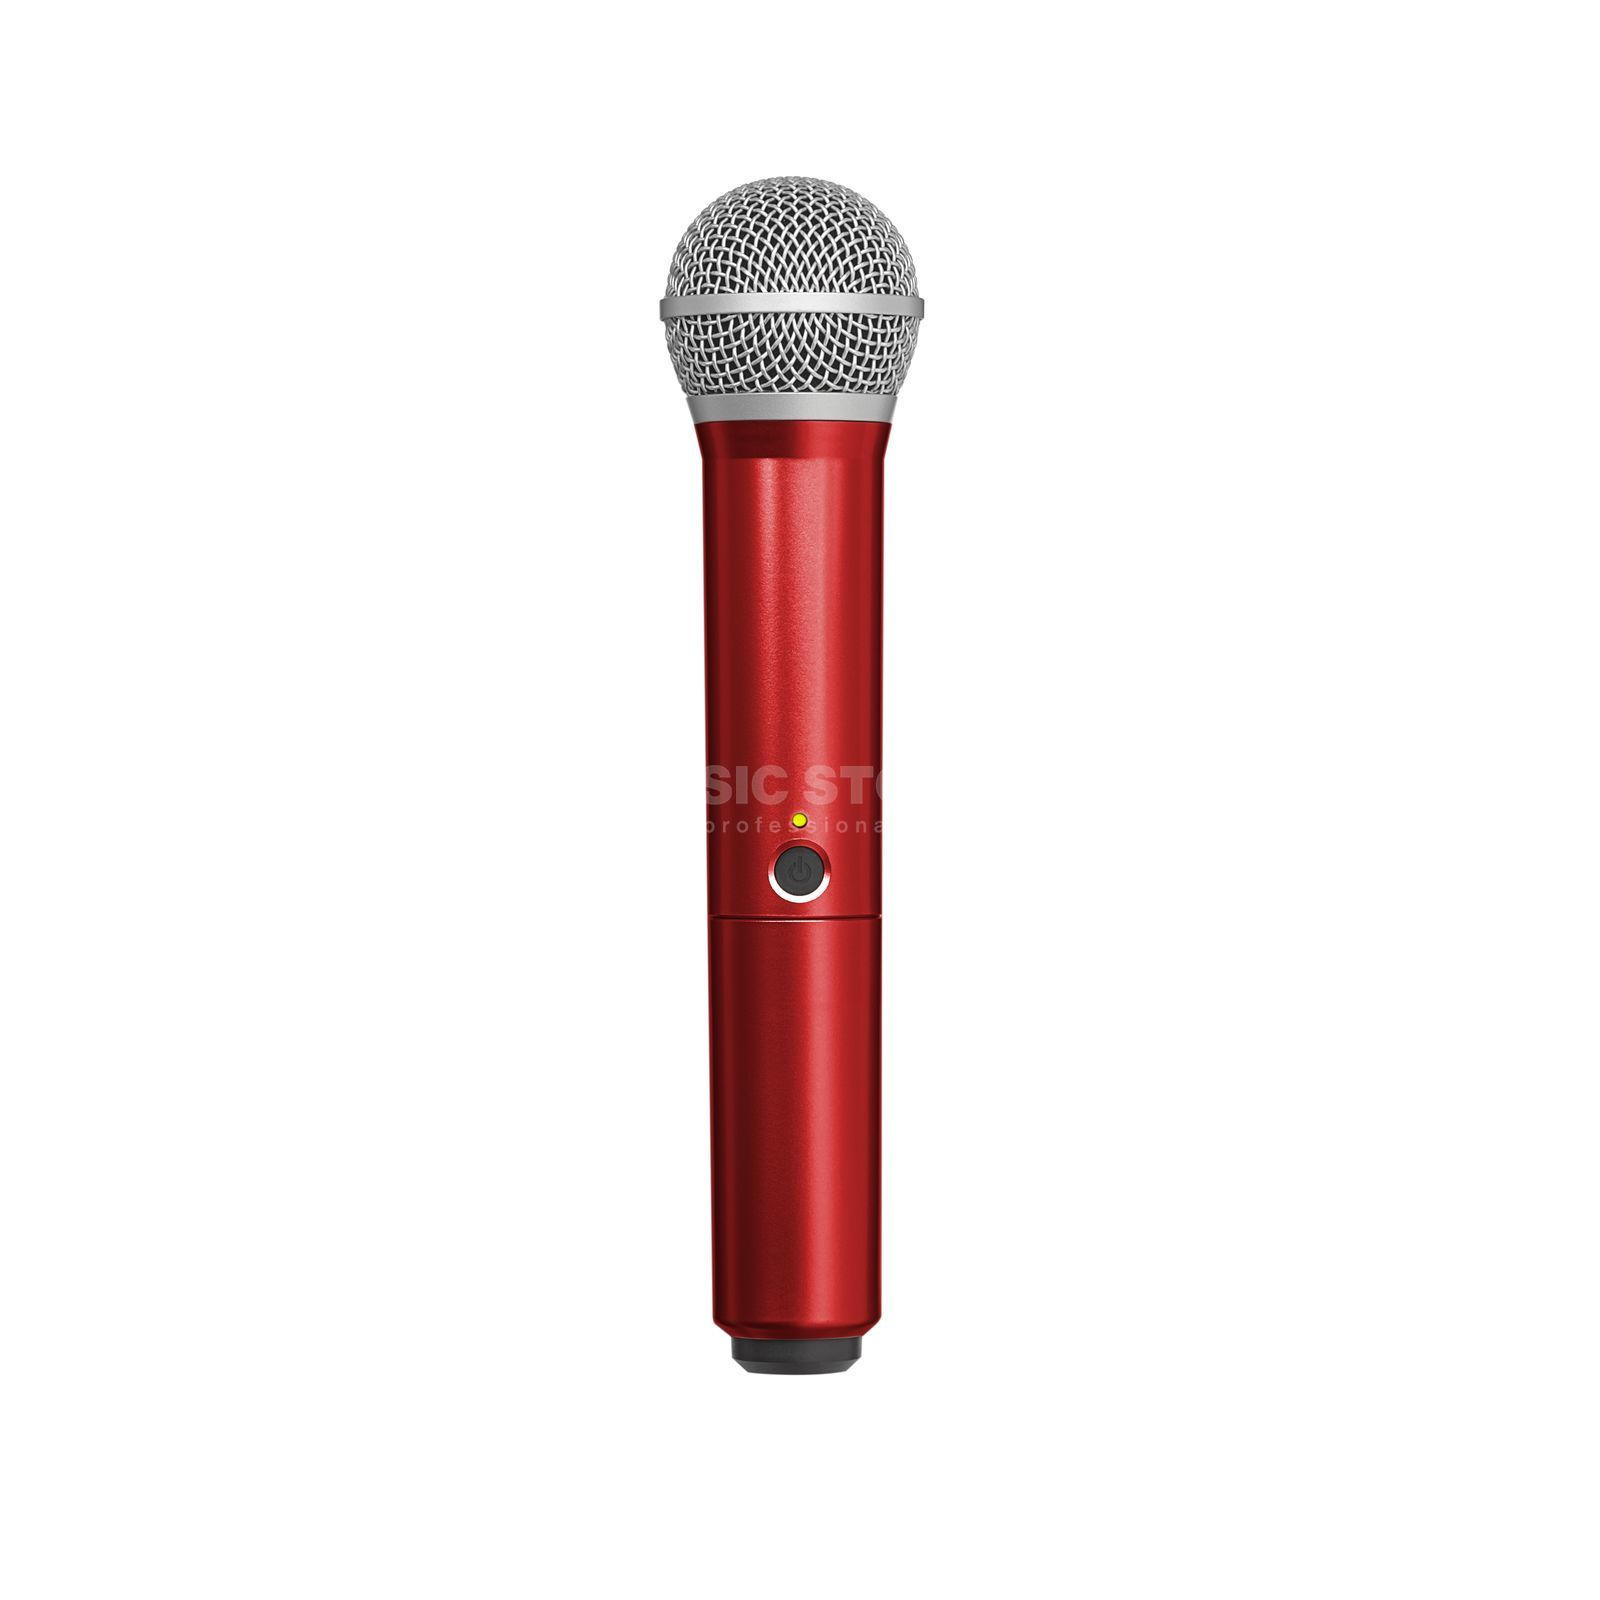 Shure WA712 Colour Housing red for BLX2/PG58 Handheld Transmitter Produktbillede